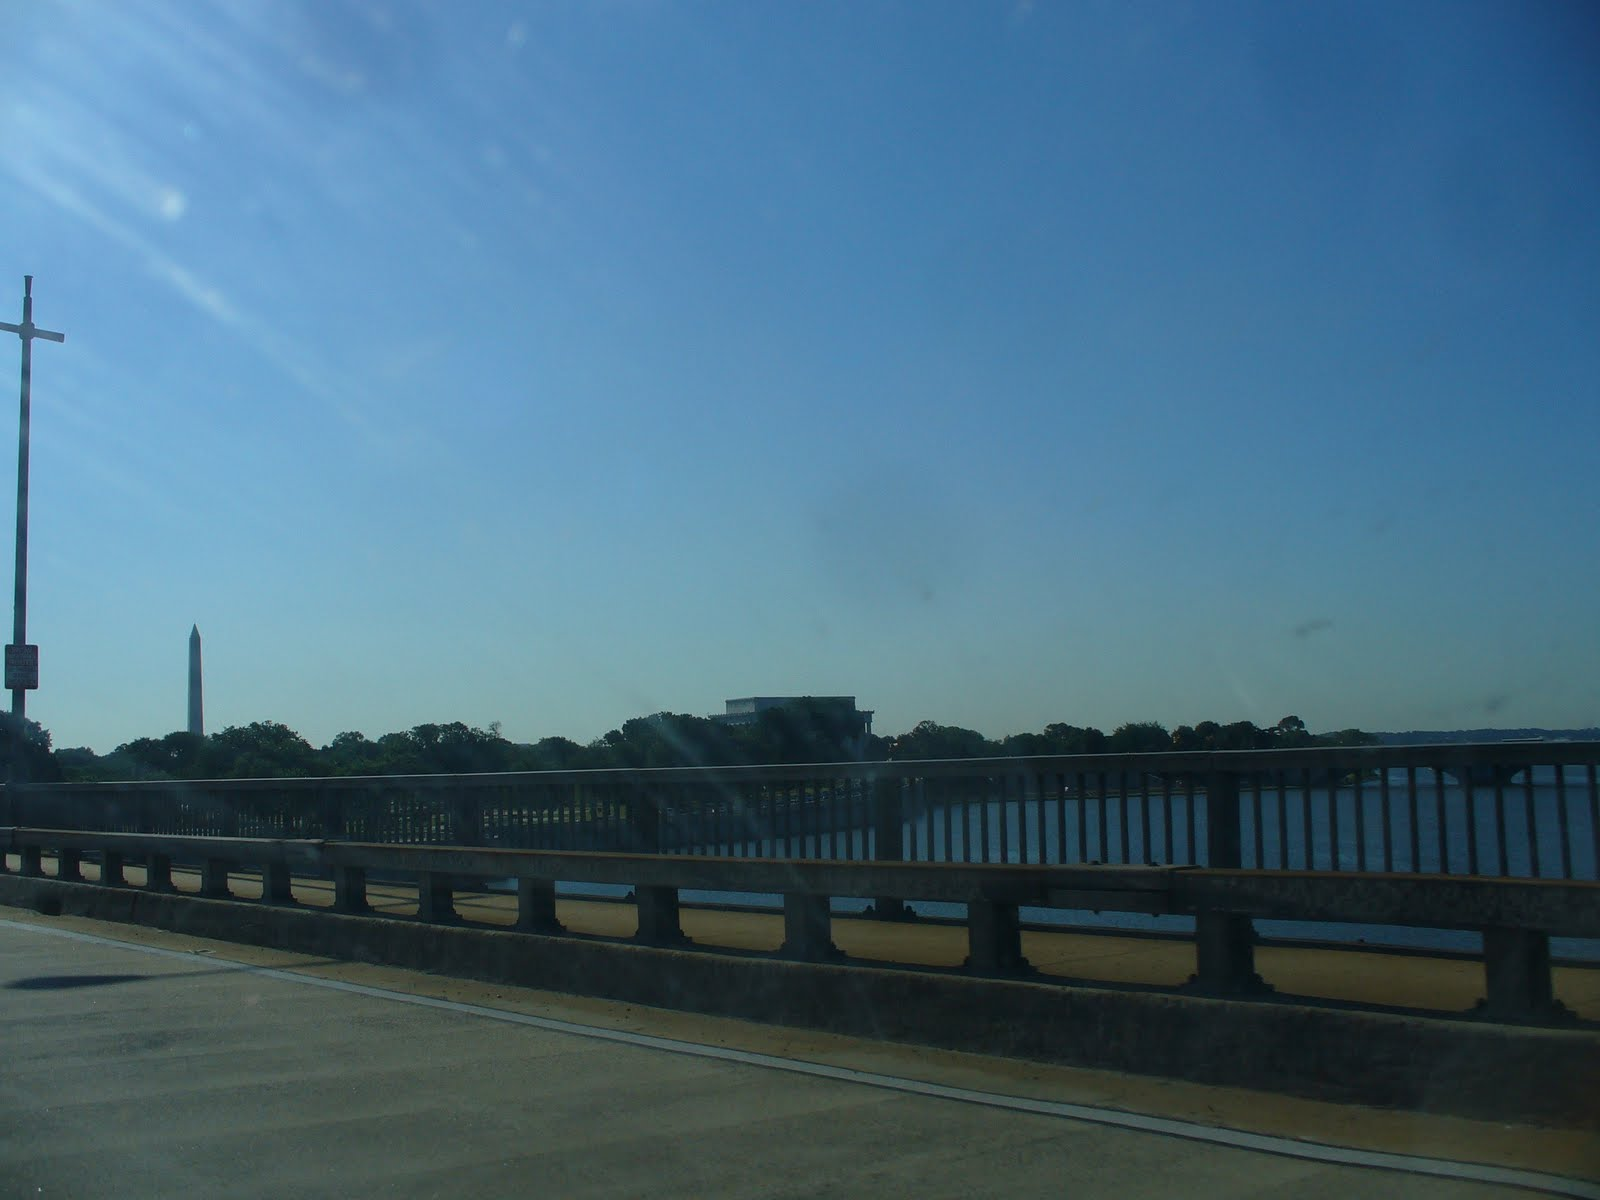 My notting hill blog - I Actually Love My 9 Mile Commute From N Arlington Into Dc Via The Roosevelt Bridge Over The Potomac Off To The Right Is The Washington Monument And The